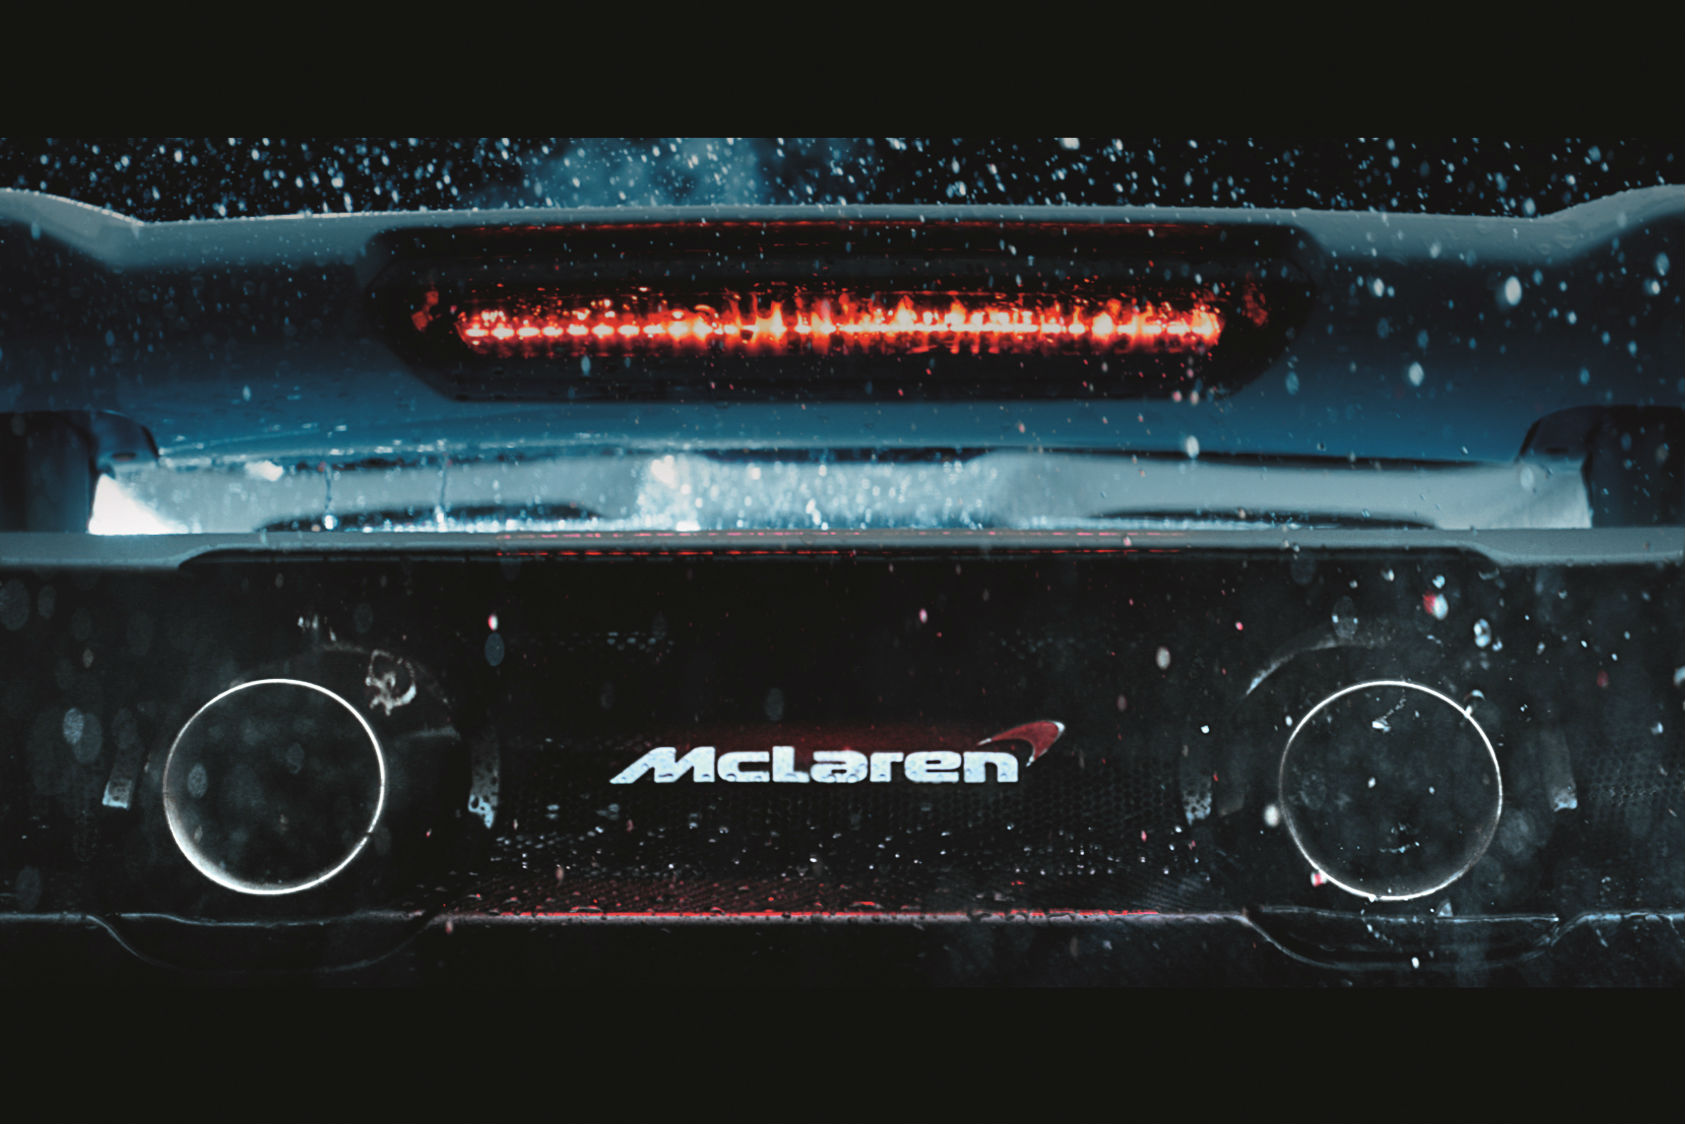 McLaren confirms 675LT ahead of debut at Geneva Motor Show 2015